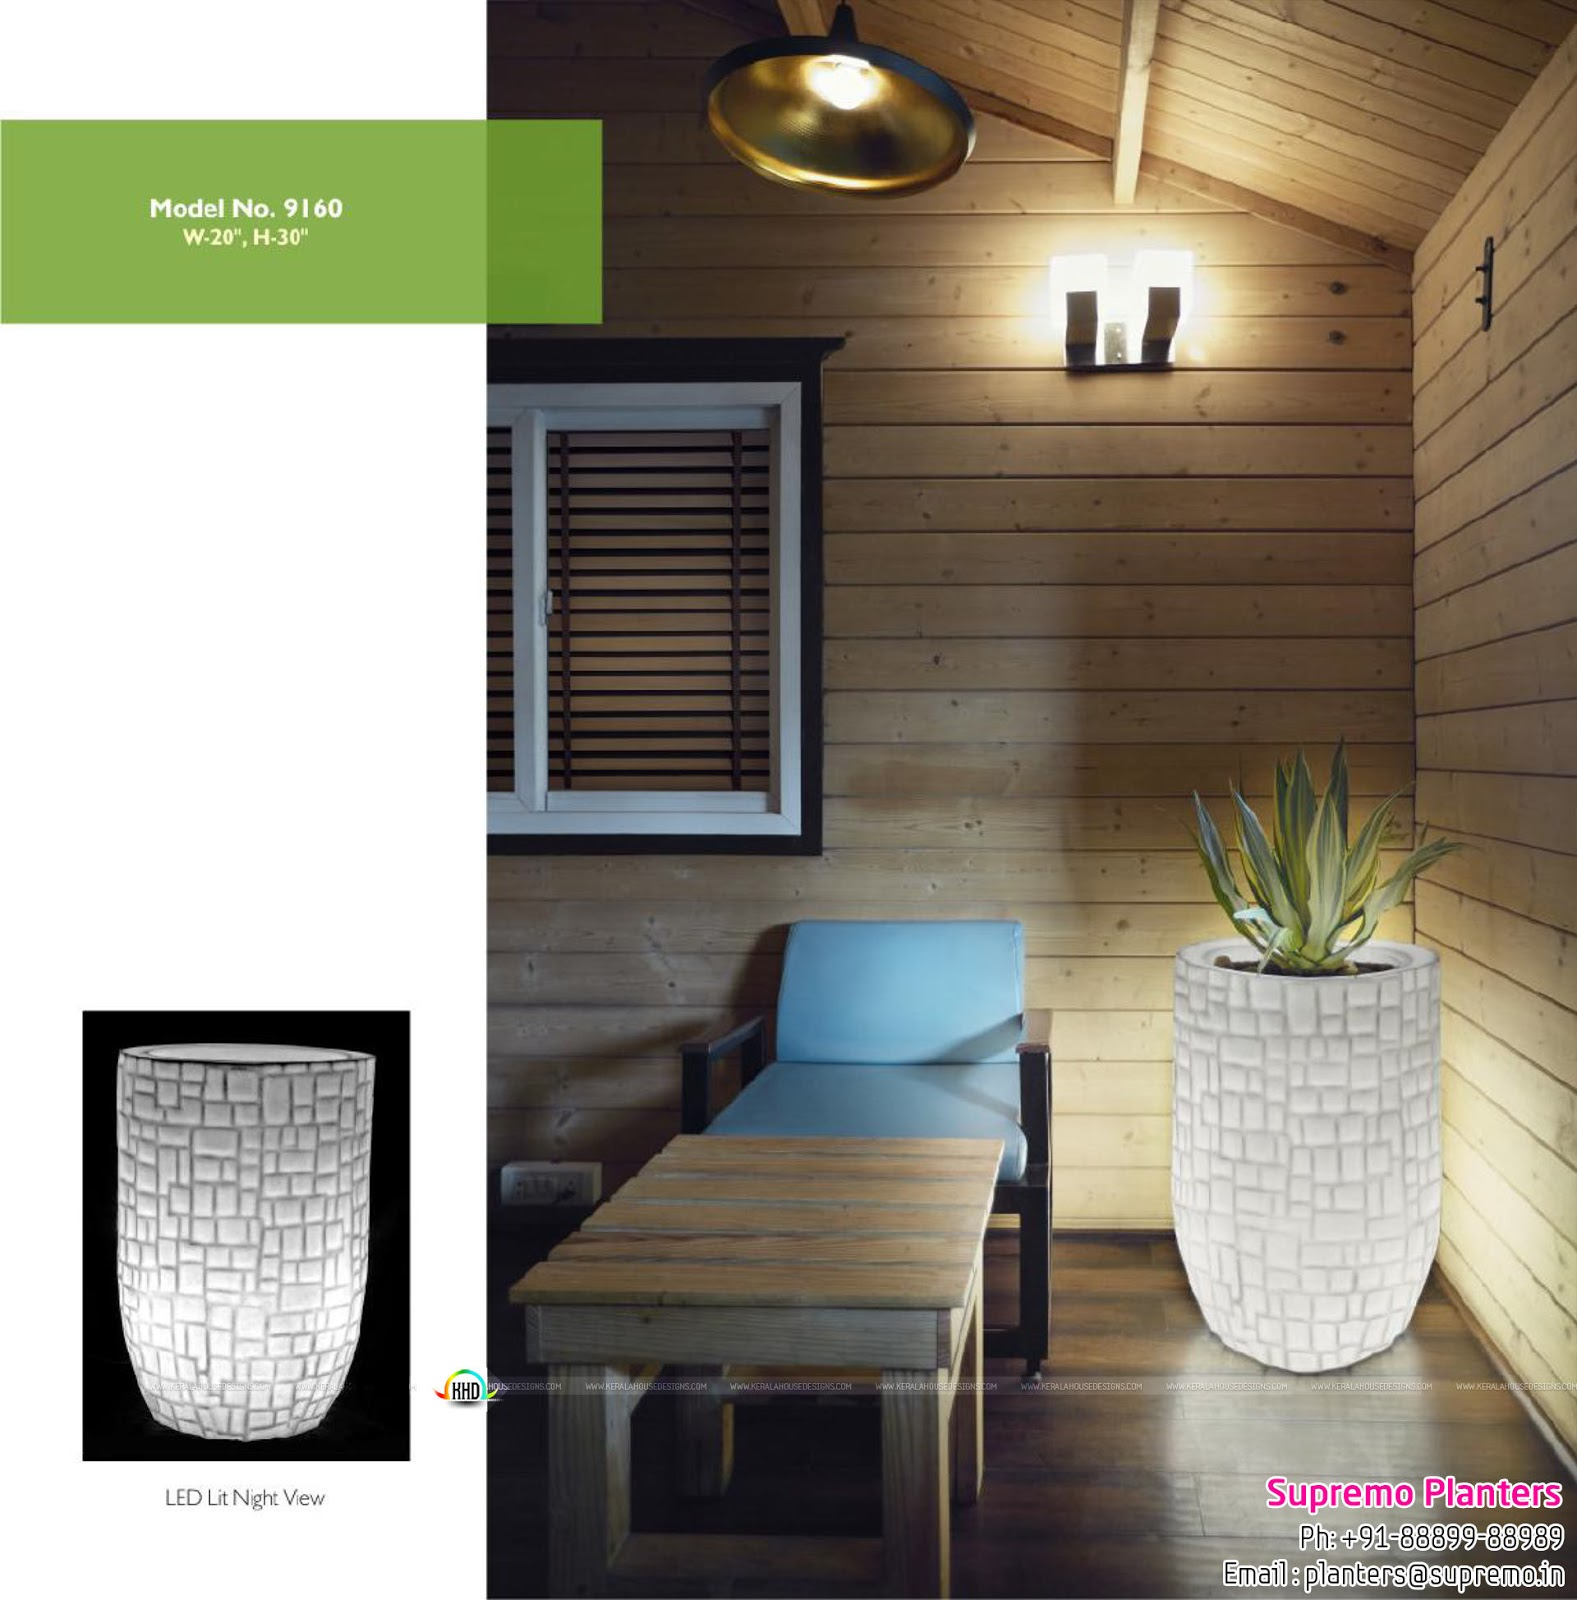 Lifestyle products that offers planters and LED light ...